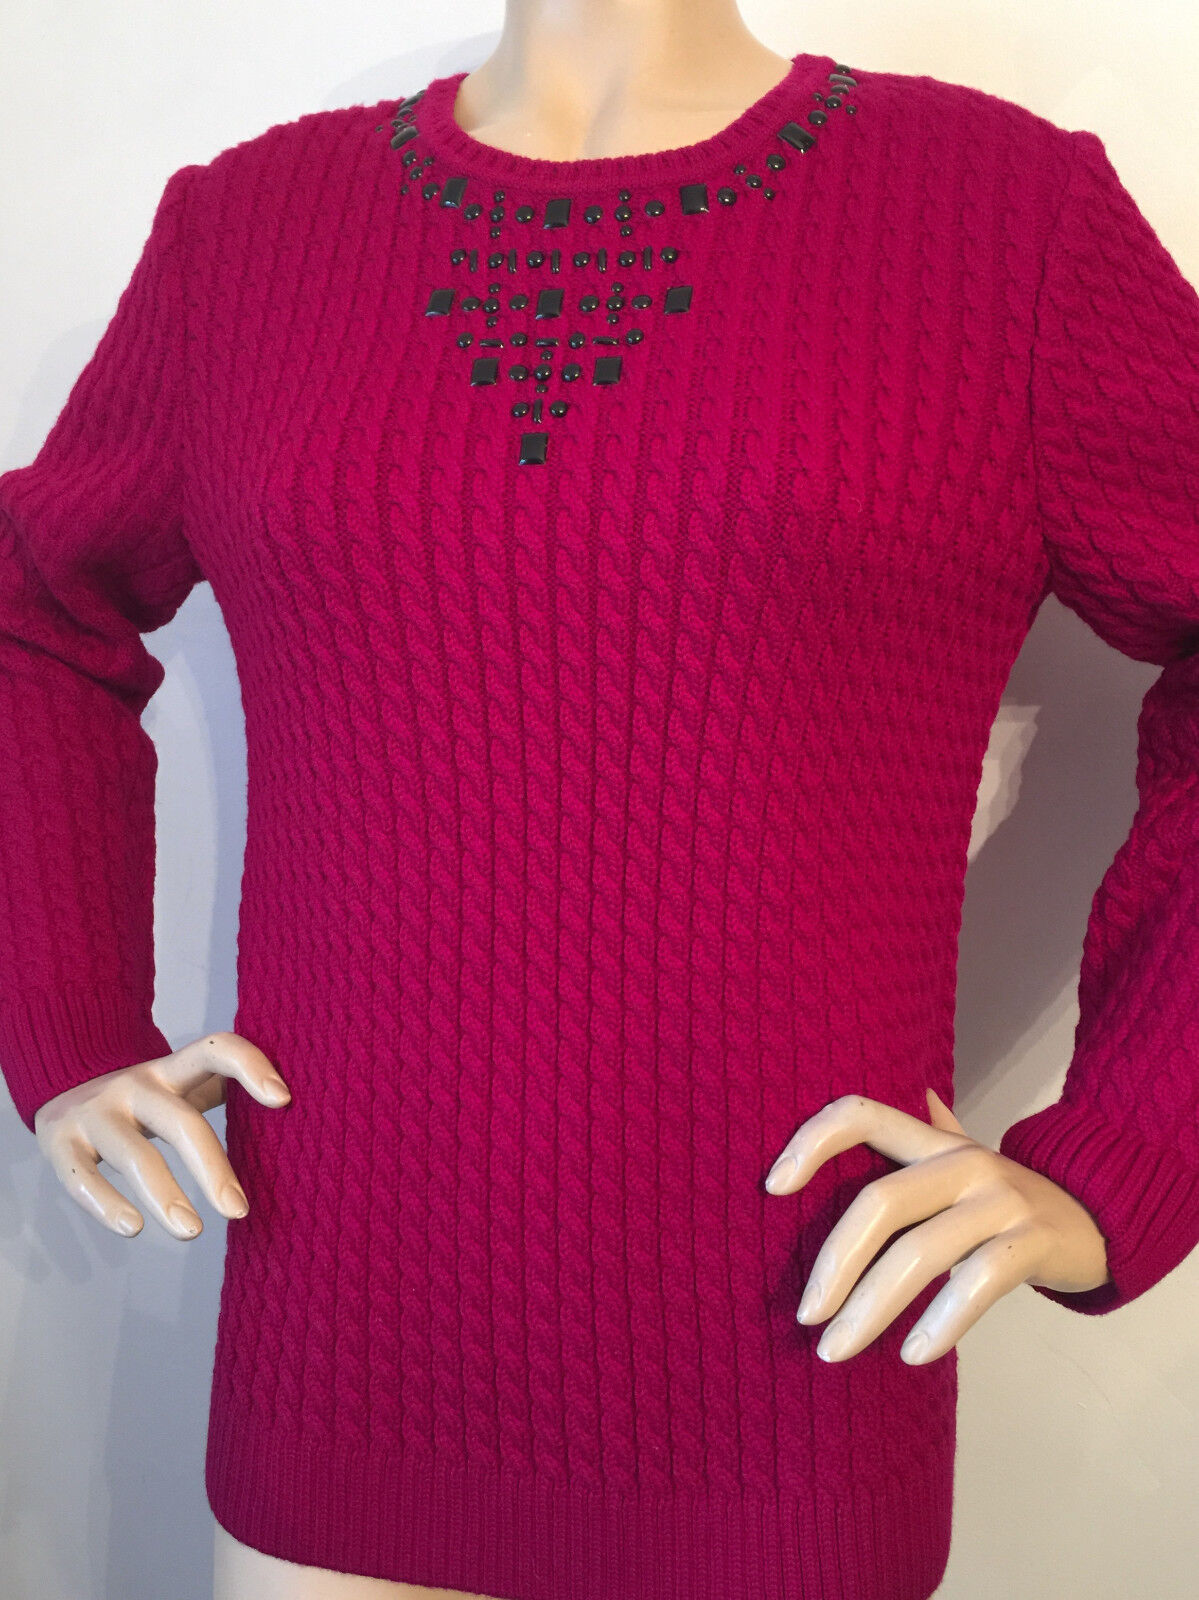 NEW ST JOHN KNIT SIZE S WOMENS SWEATER BOURDEAU CABLE KNIT JEWELS